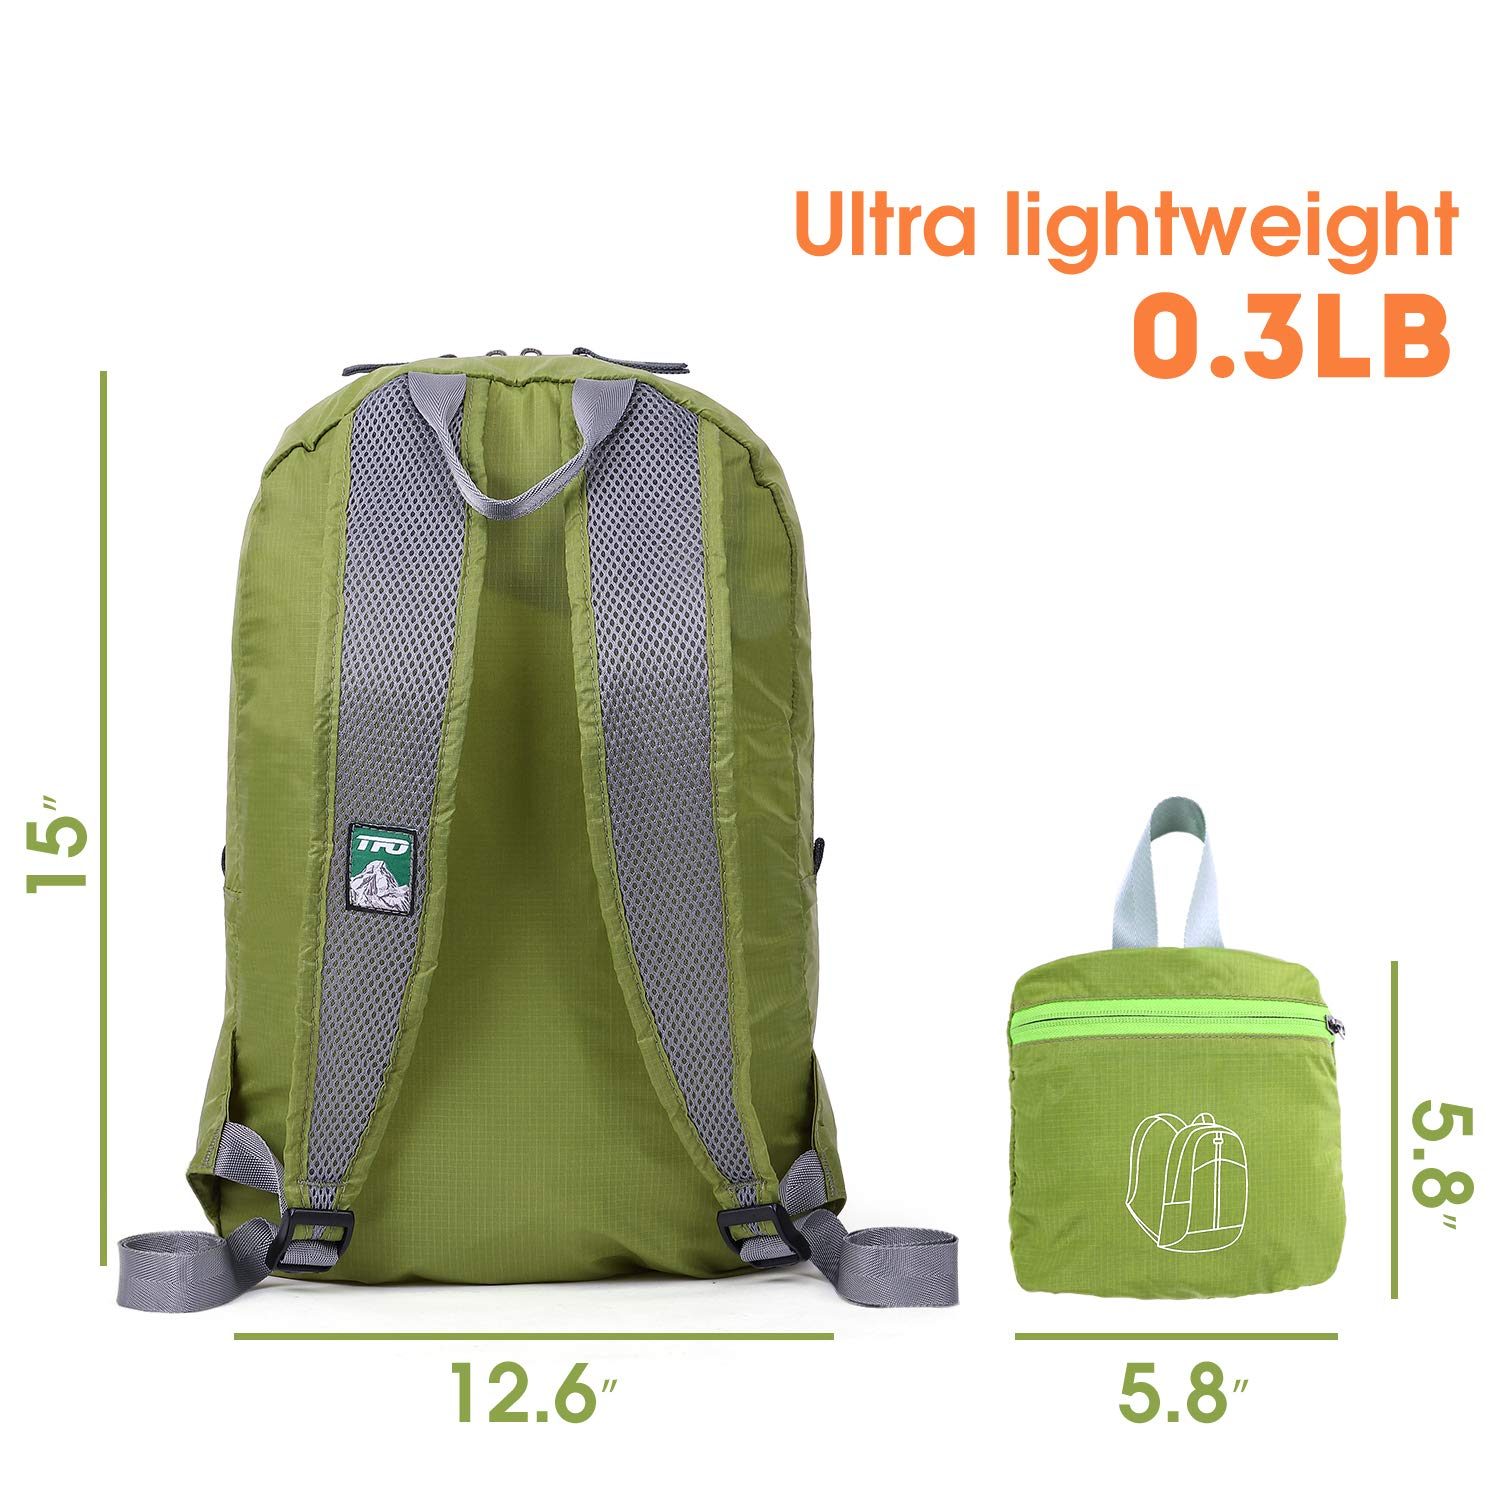 TFO Hiking Daypack Foldable Lightweight Water Resistant Backpack for Weekend Trips Camping